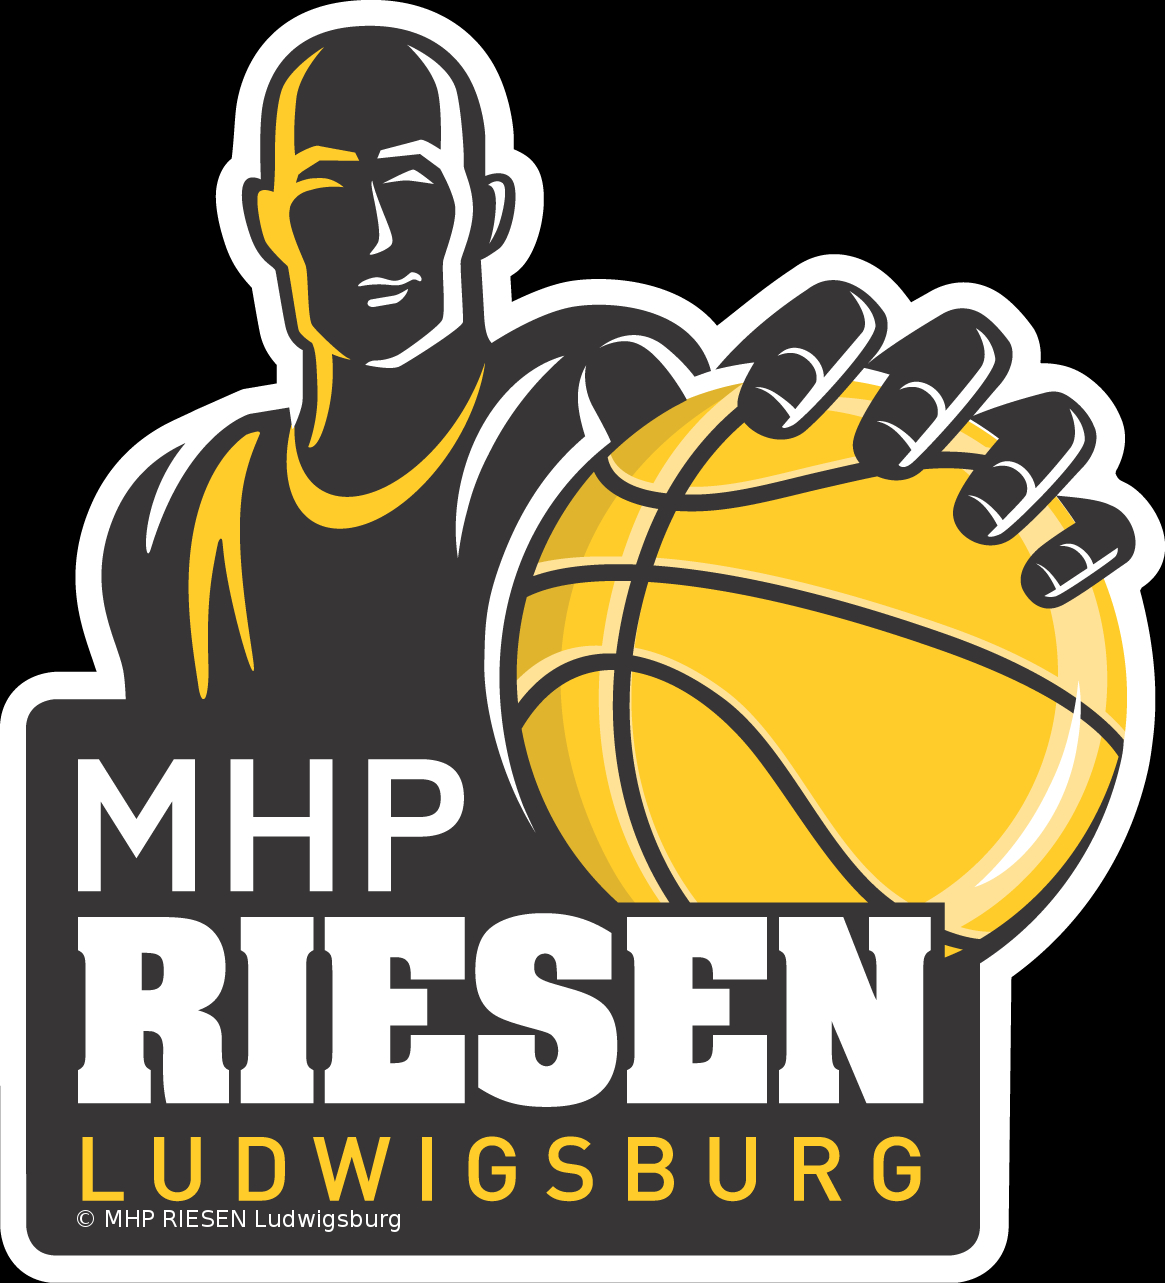 MHP RIESEN Ludwigsburg zeichnen RIESEN-Helden aus